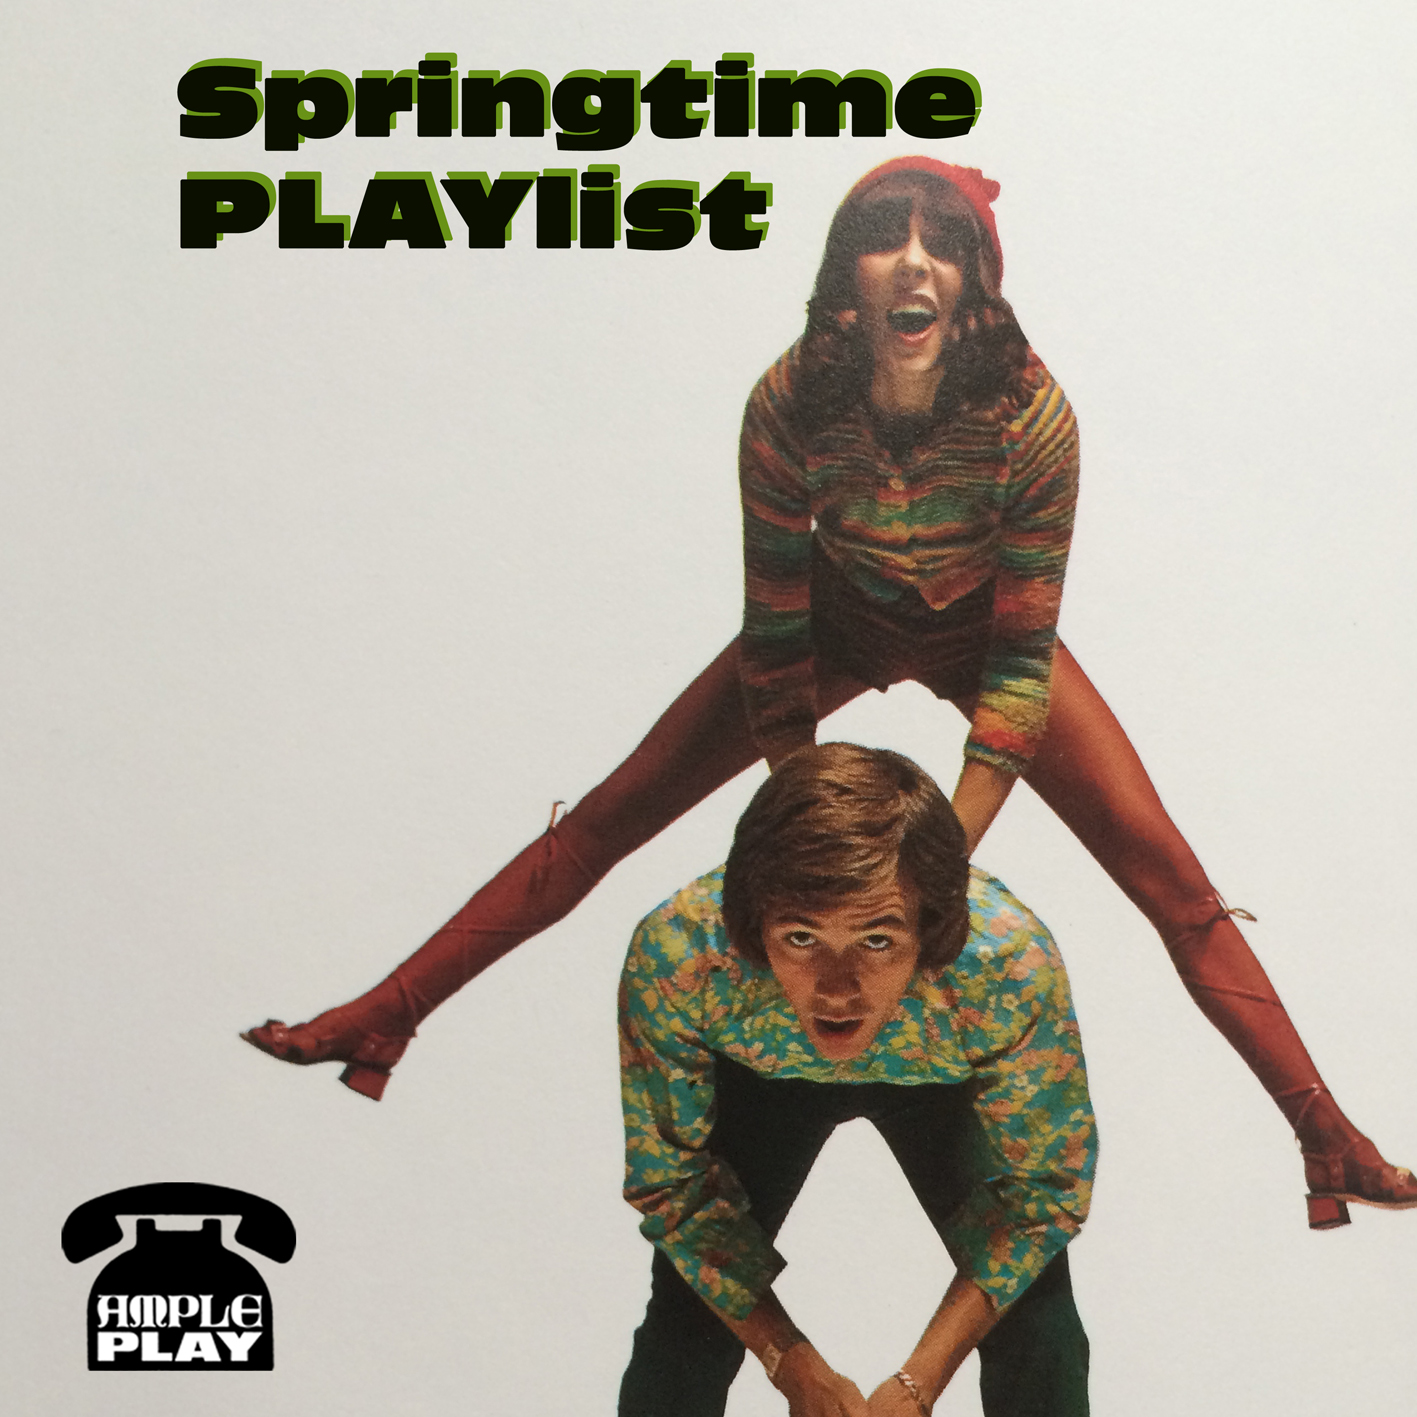 Springtime playlist small image